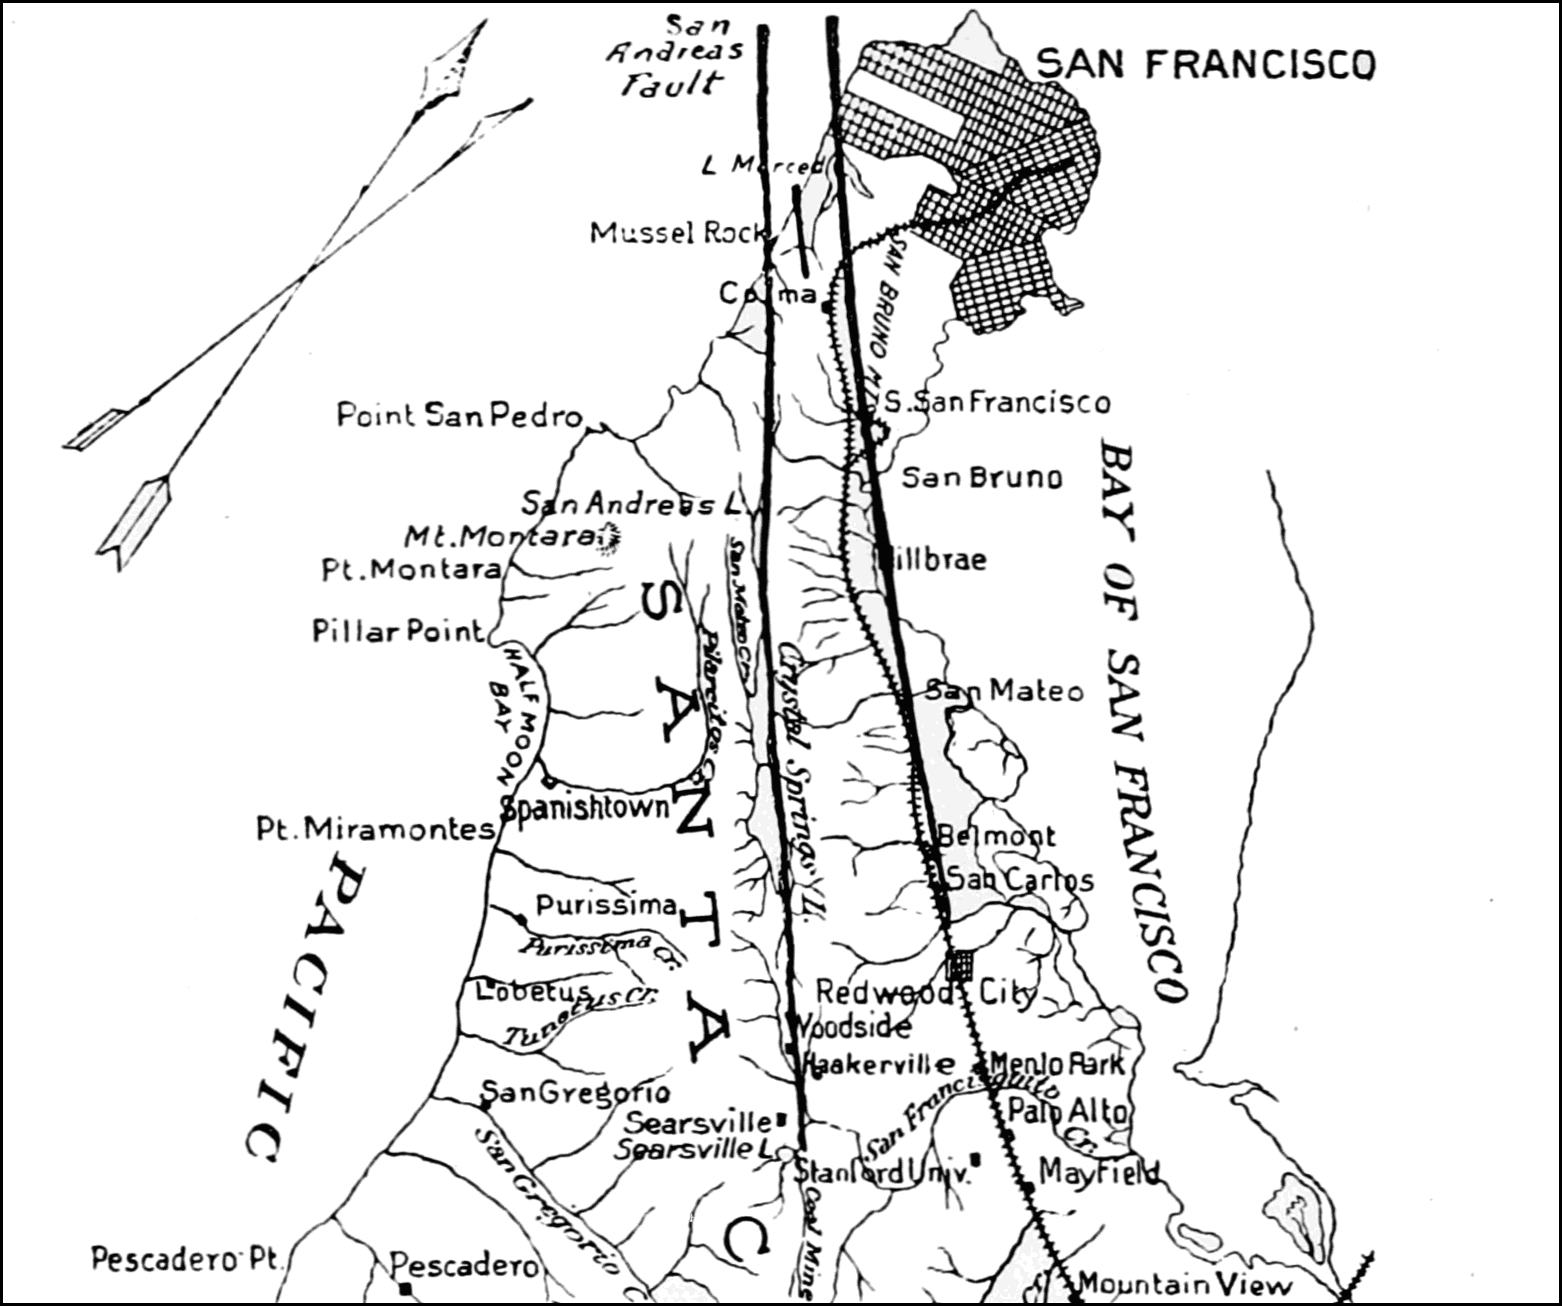 PSM V69 D074 San francisco peninsula north showing the three faults.png